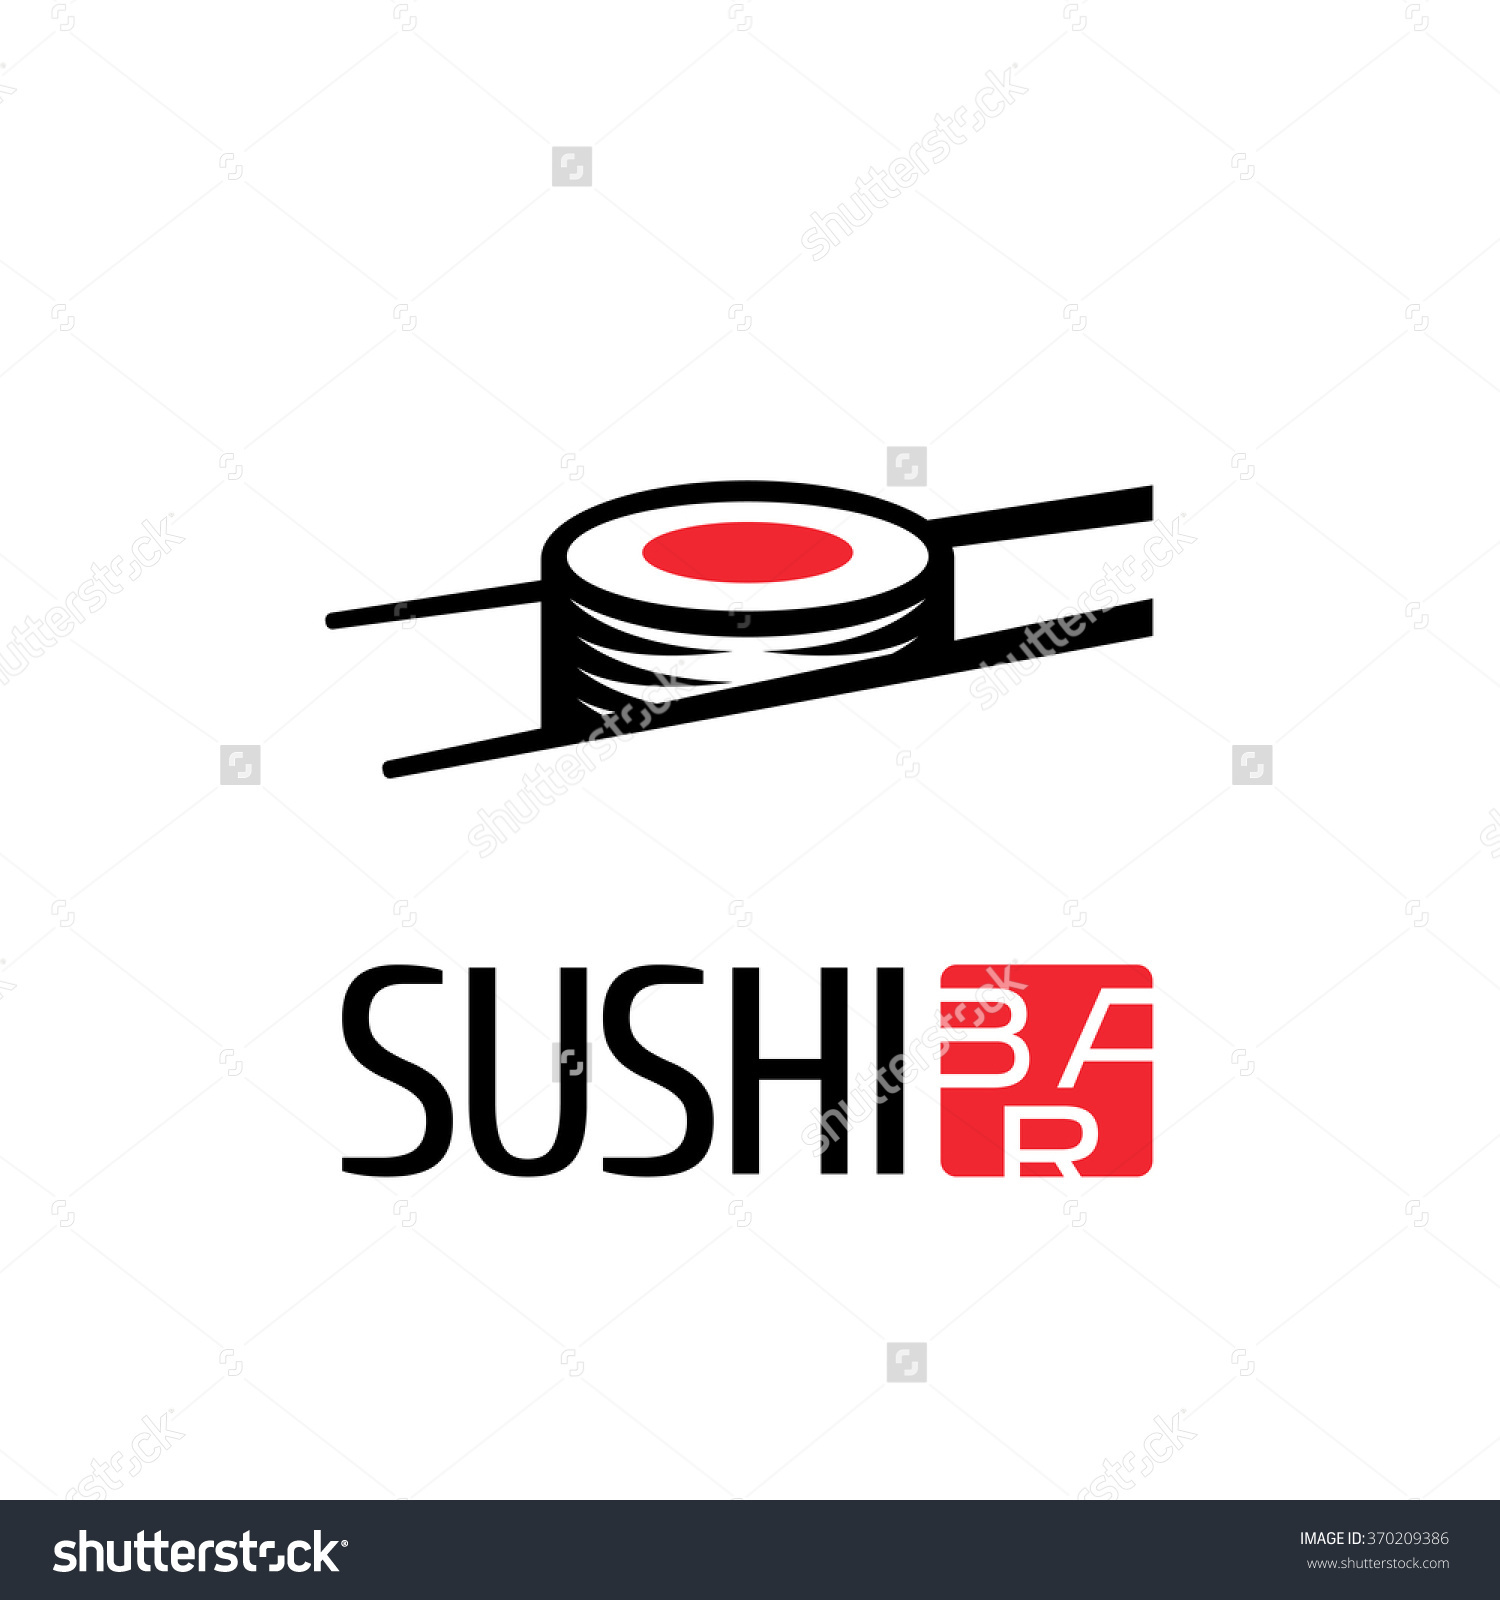 Sushi clipart logo Logo Icon Design Sign Element